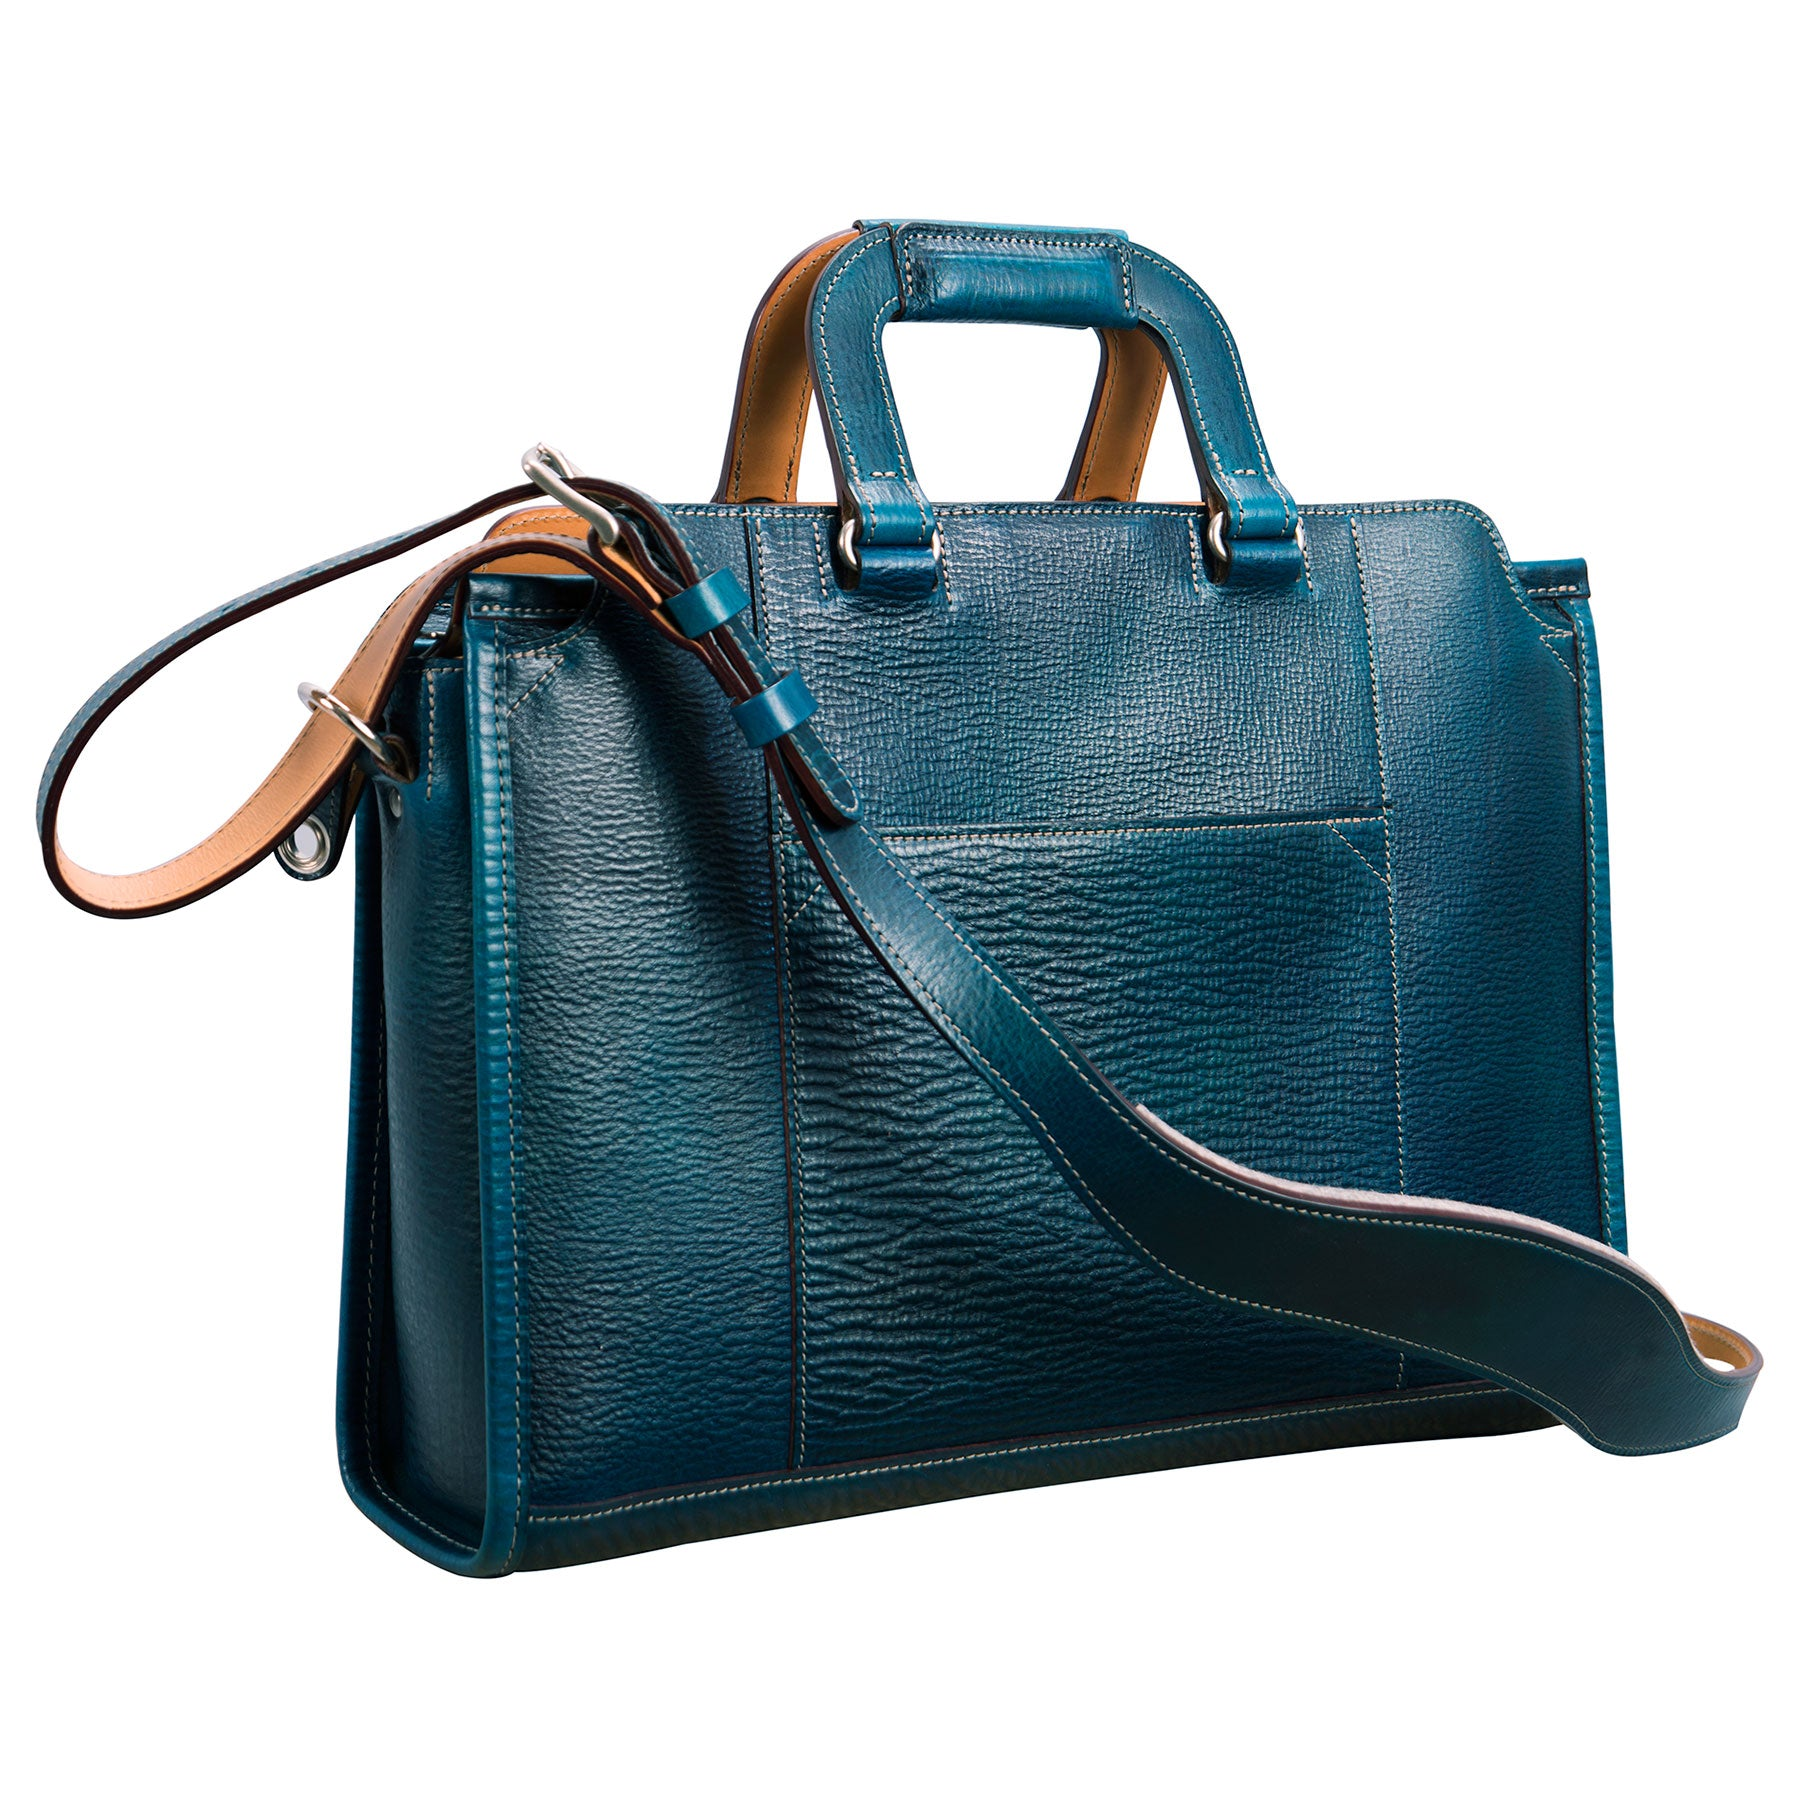 Glaser Designs Day Tote. Hand colored Blue vegetable tanned leather. Solid brass hardware. Made to-measure, custom sizes.